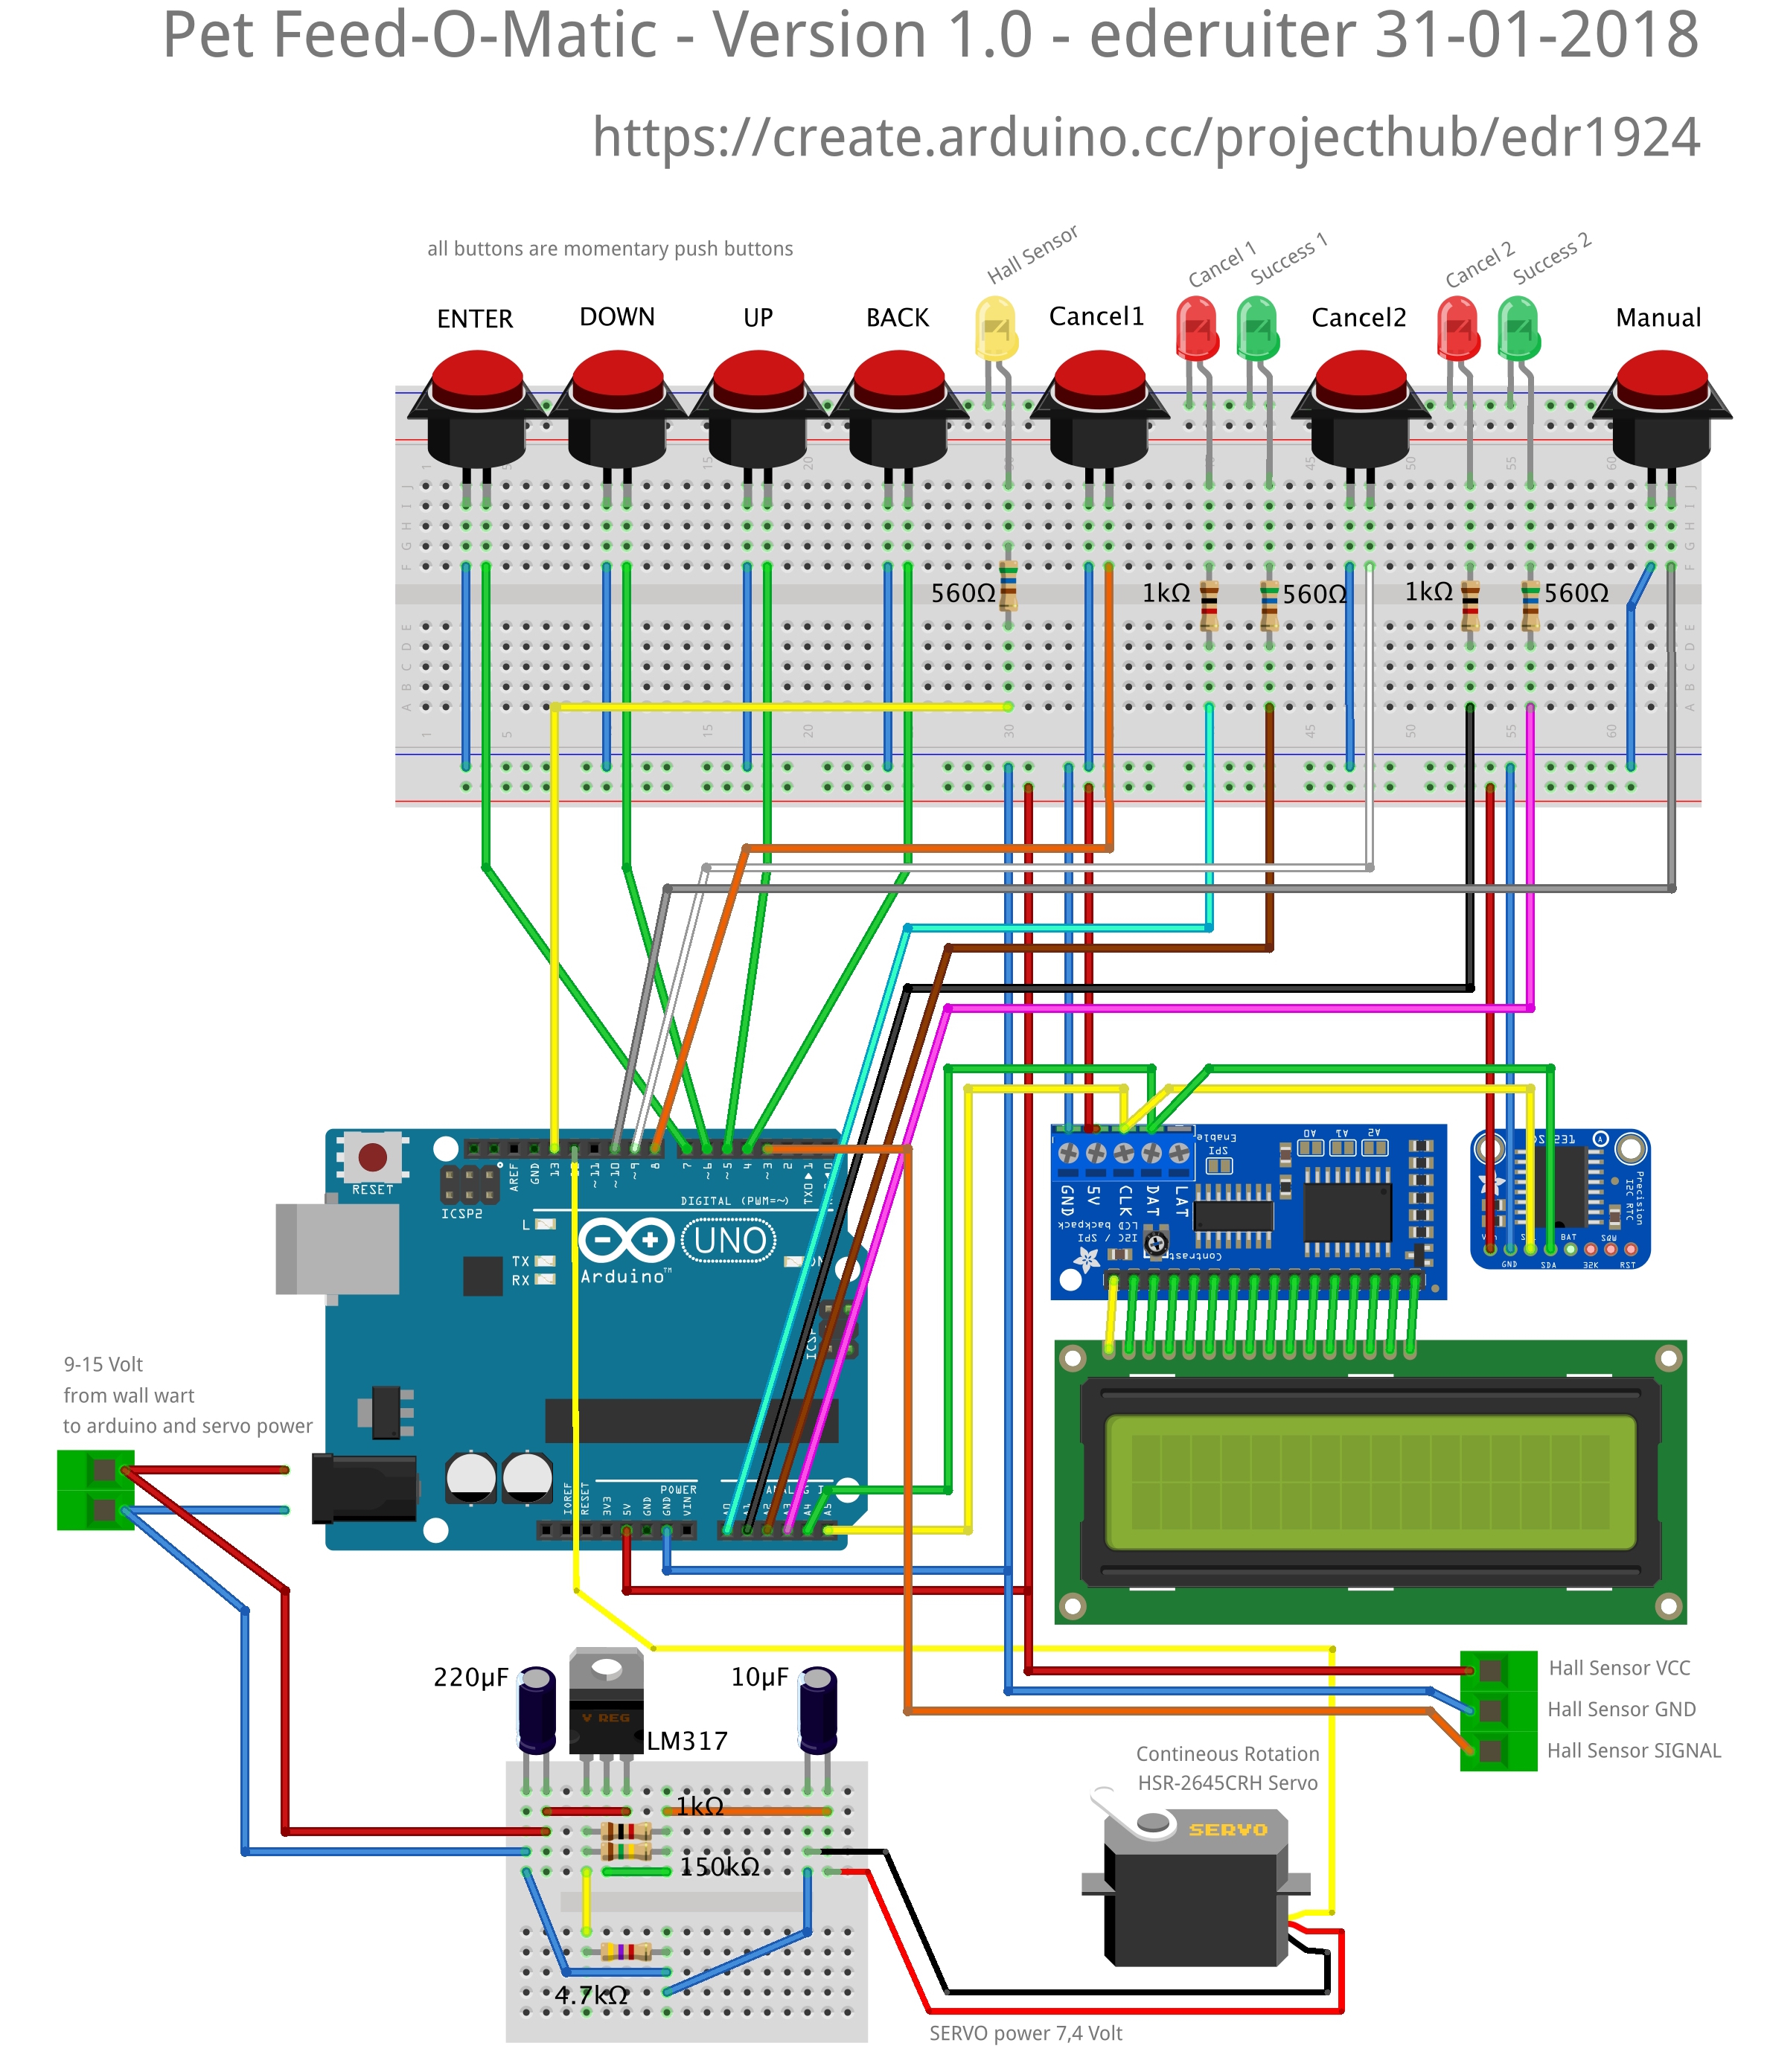 Arduino And Ds3231 Real Time Clock Circuit Schematics Uno Based Easy To Build Pet Feeder Feed O Matic Schematic V Wun9ik8mk7